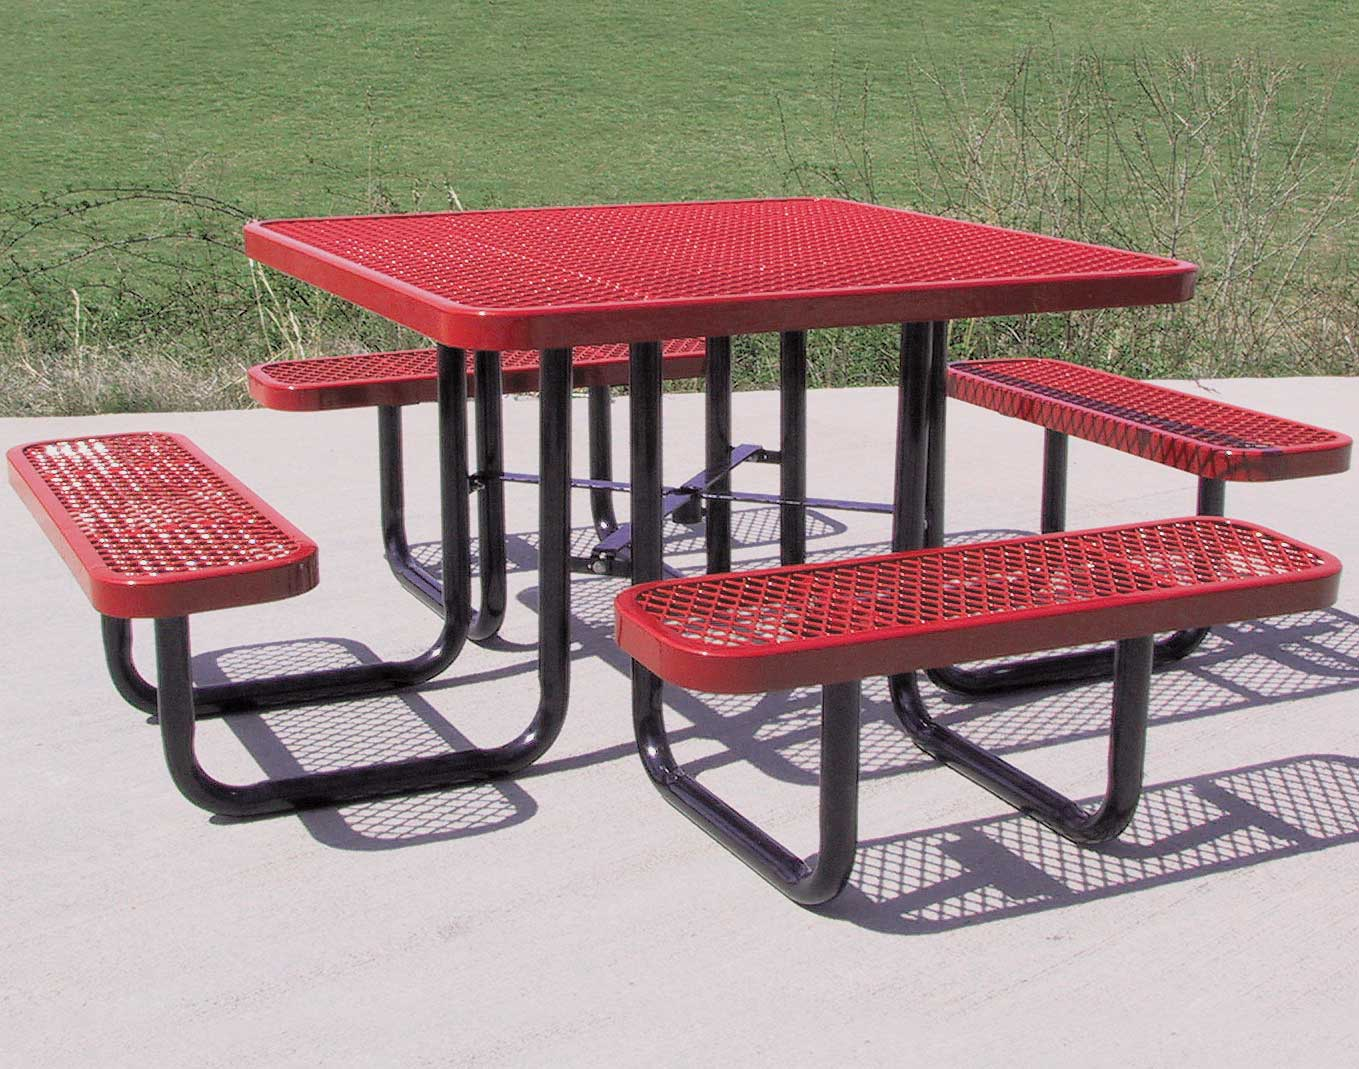 Square Expanded Metal Picnic Table - Square picnic table with benches